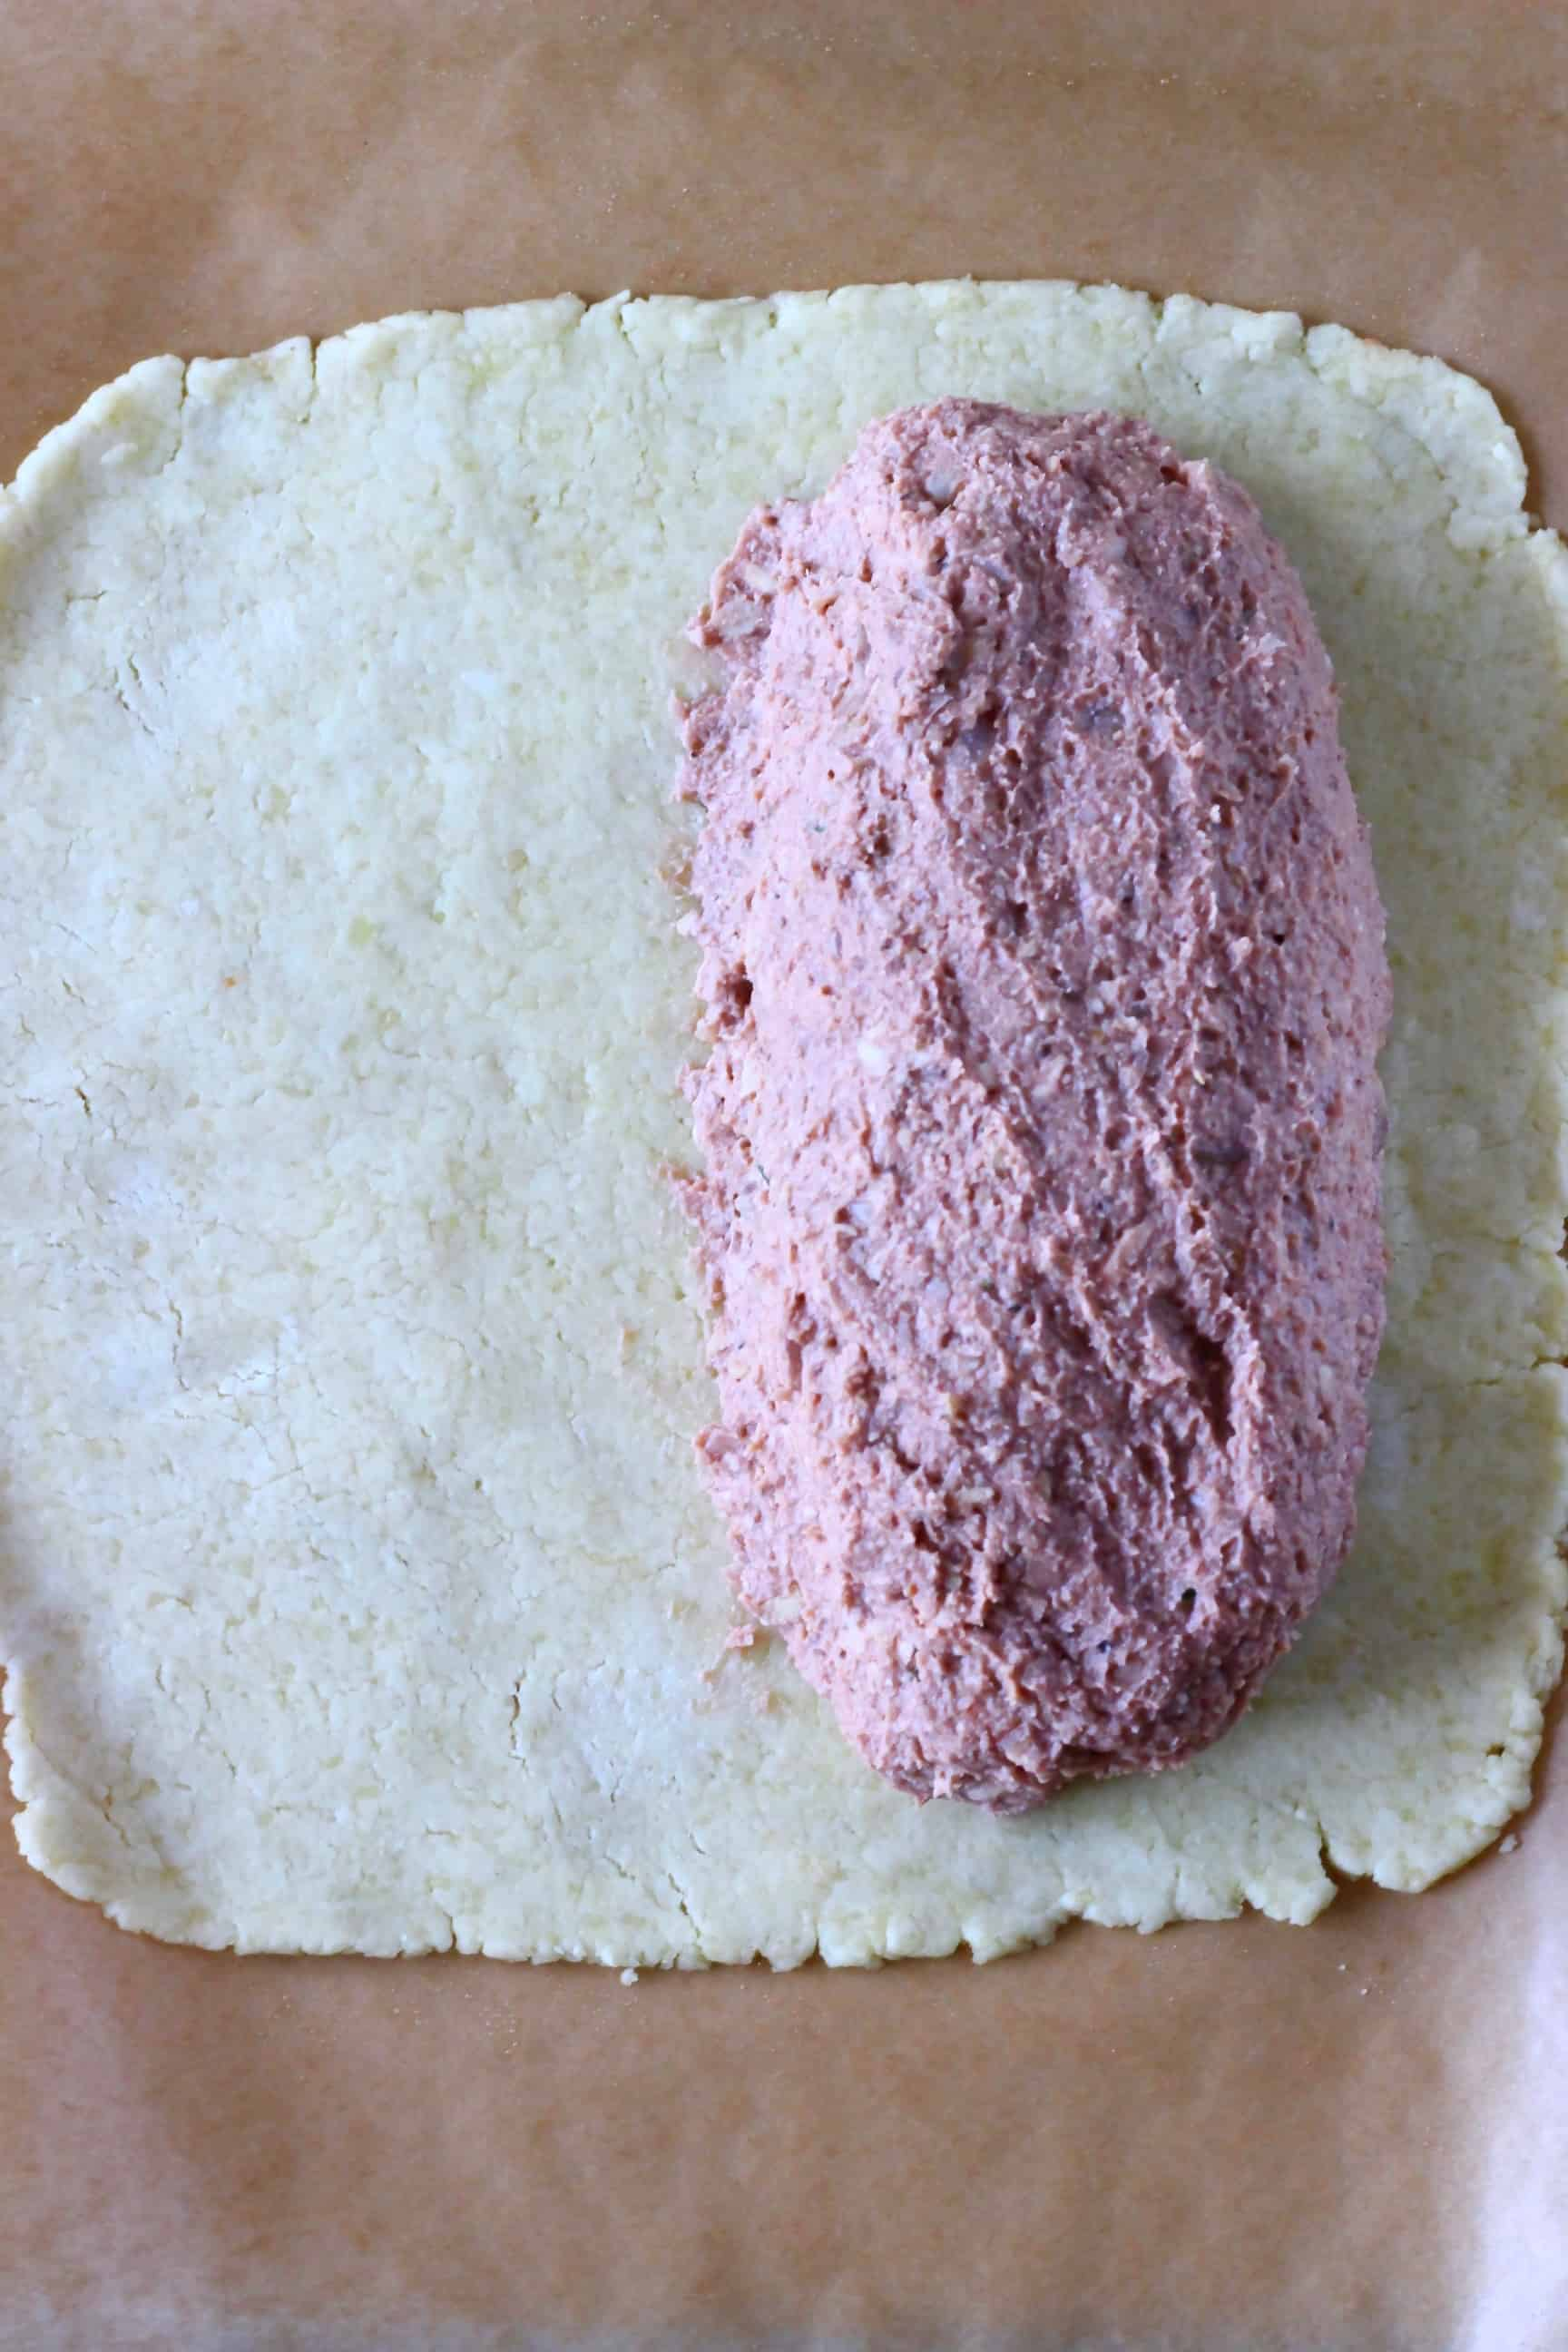 A square of raw gluten-free vegan pastry dough with a sausage-shaped raw vegan wellington filling on top of it